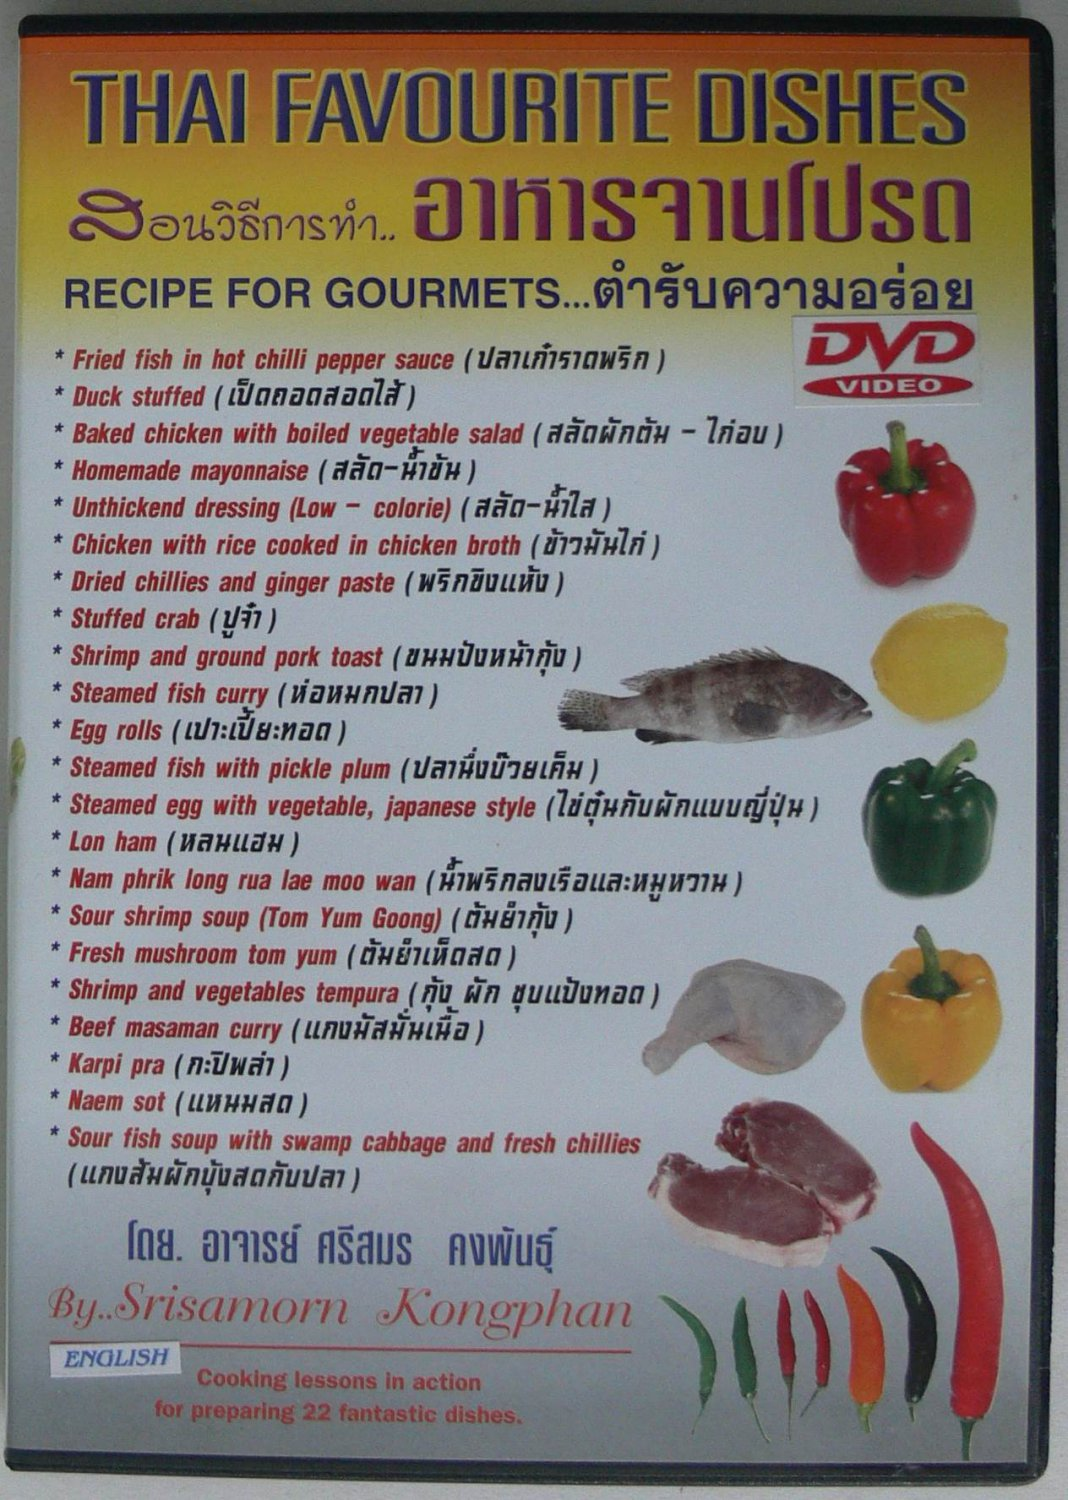 Thai Cooking Tom Yum Shrimp Curry Favorite Dishes Recipe Gourmet Training 2 DVD